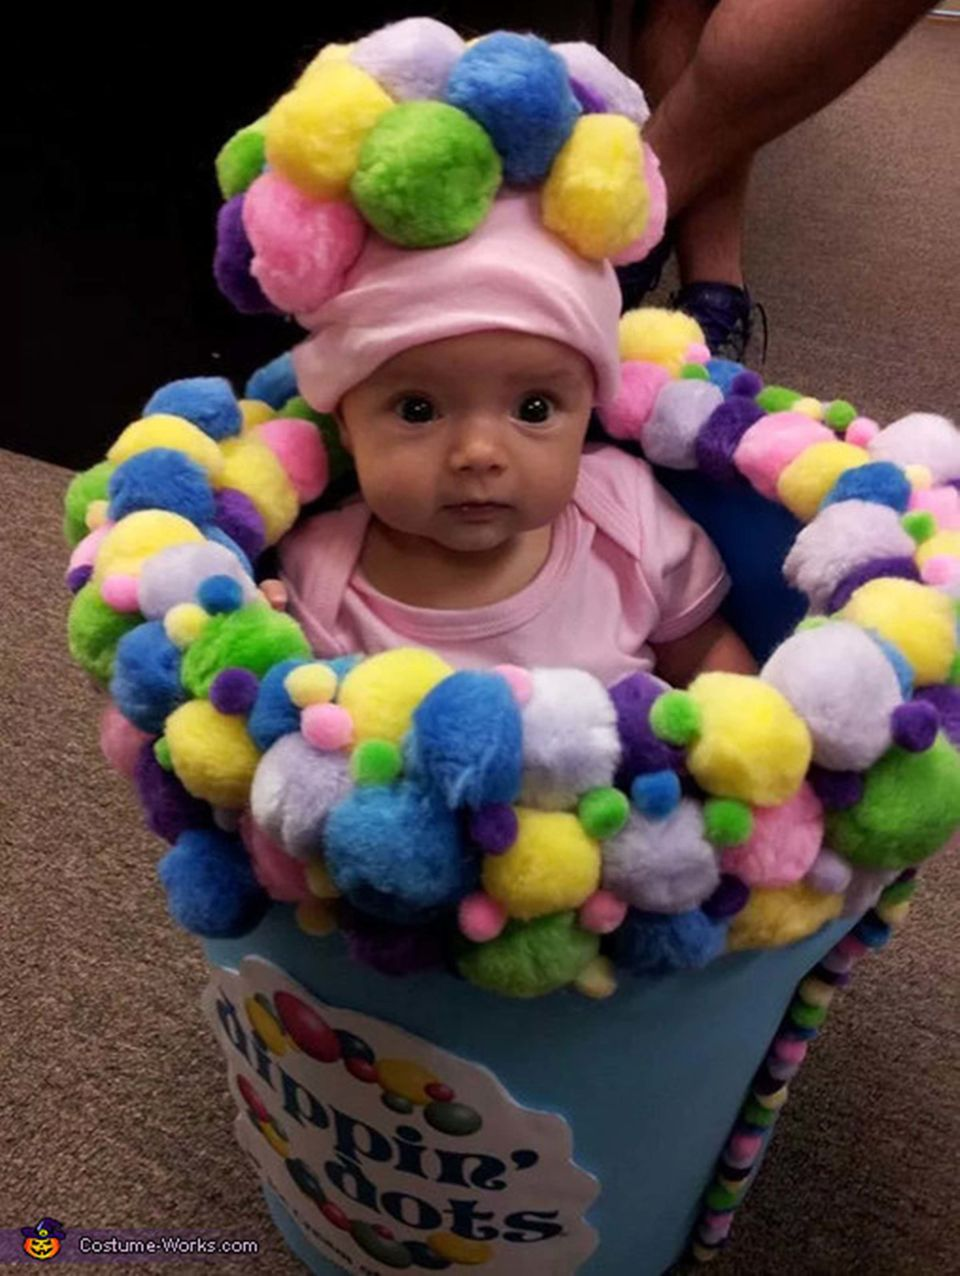 """<a href=""""http://www.costume-works.com/costumes_for_babies/dippin-dots.html"""">via Costume Works</a>"""